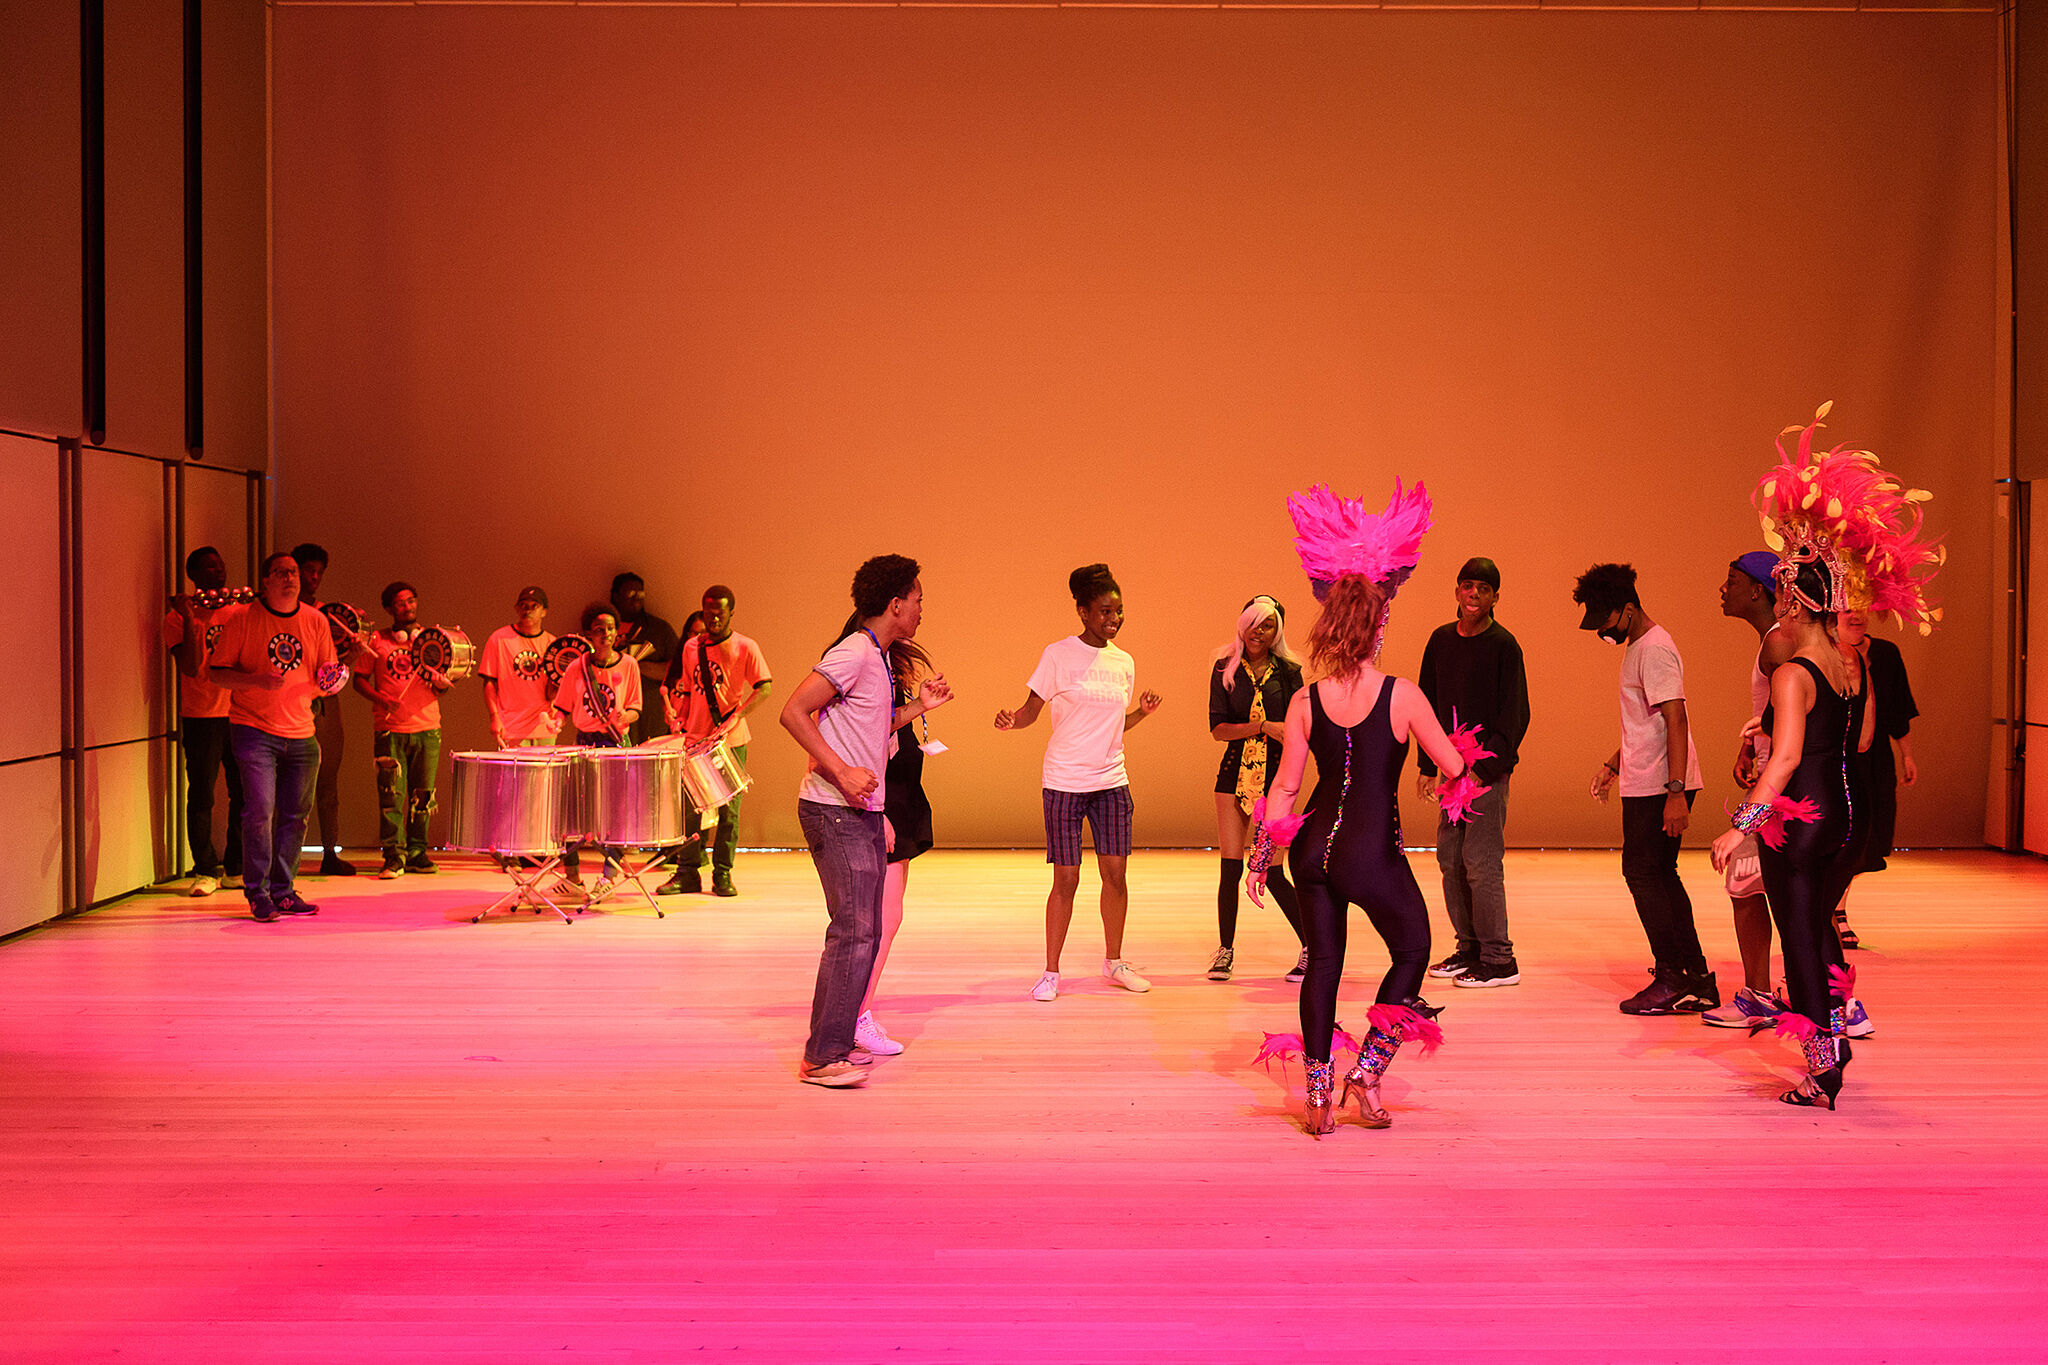 A photo of a teens engaging with costumed dancers in a brightly colored room, while a band plays in the corner.